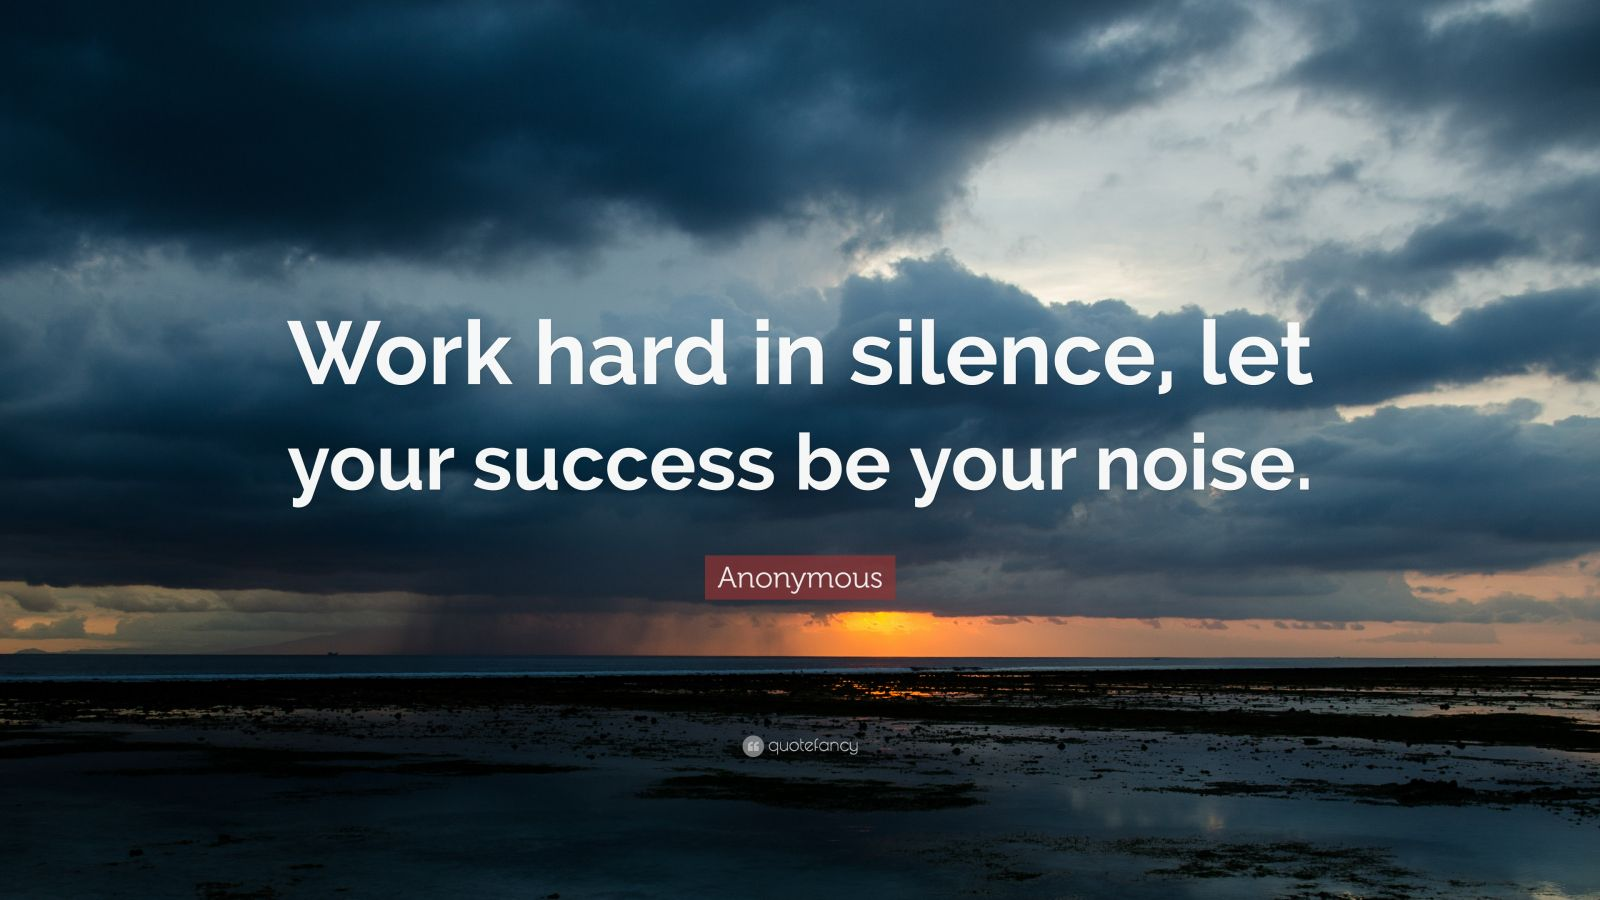 Work Motivational Quotes Motivational Quotes 100 Wallpapers  Quotefancy